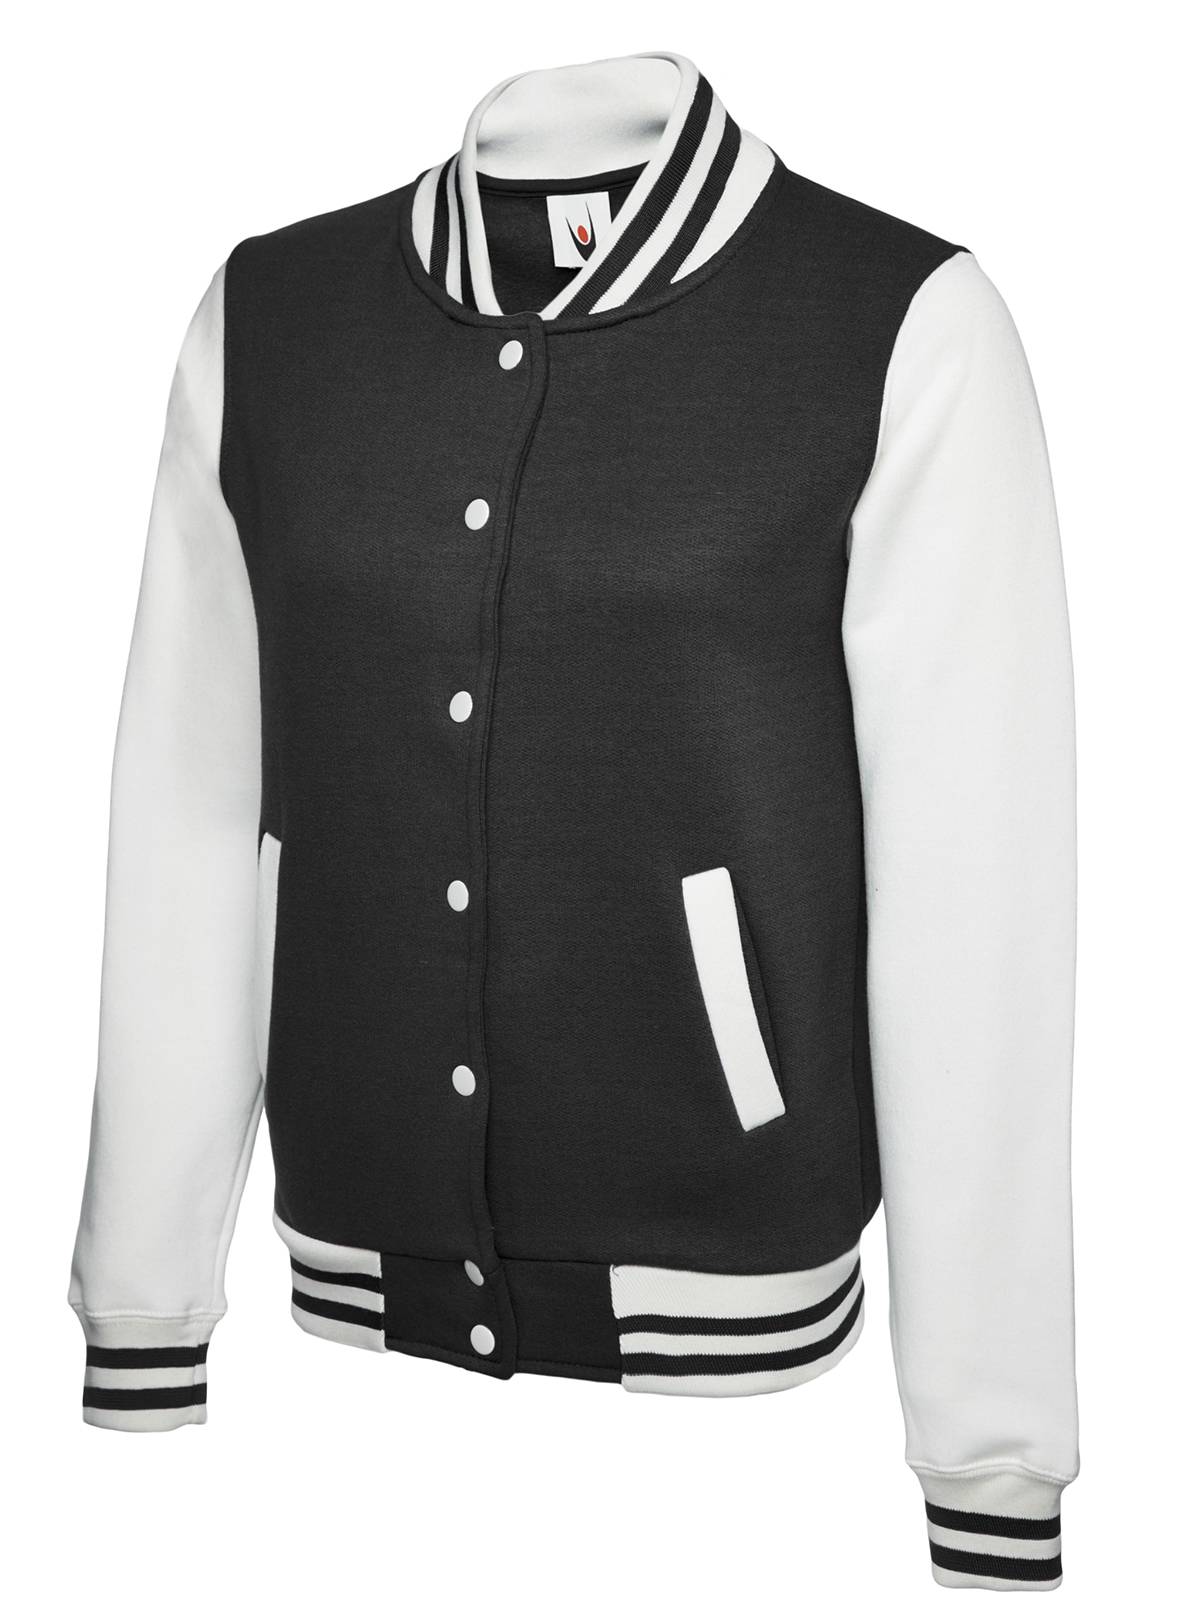 UNEEK UC526 LADIES VARSITY JACKET